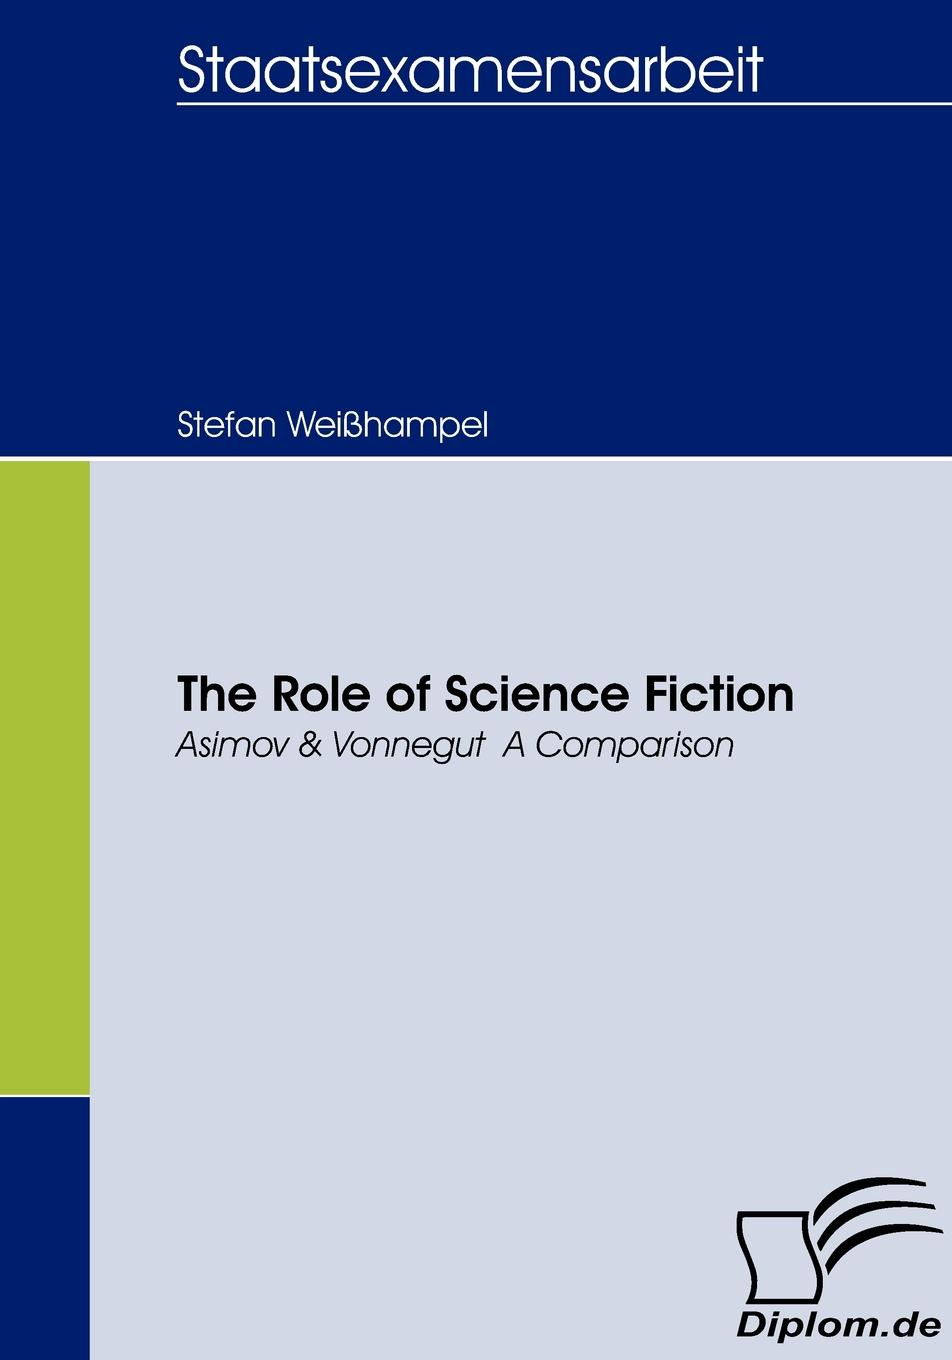 Stefan Weißhampel The Role of Science Fiction stefan weißhampel the role of science fiction